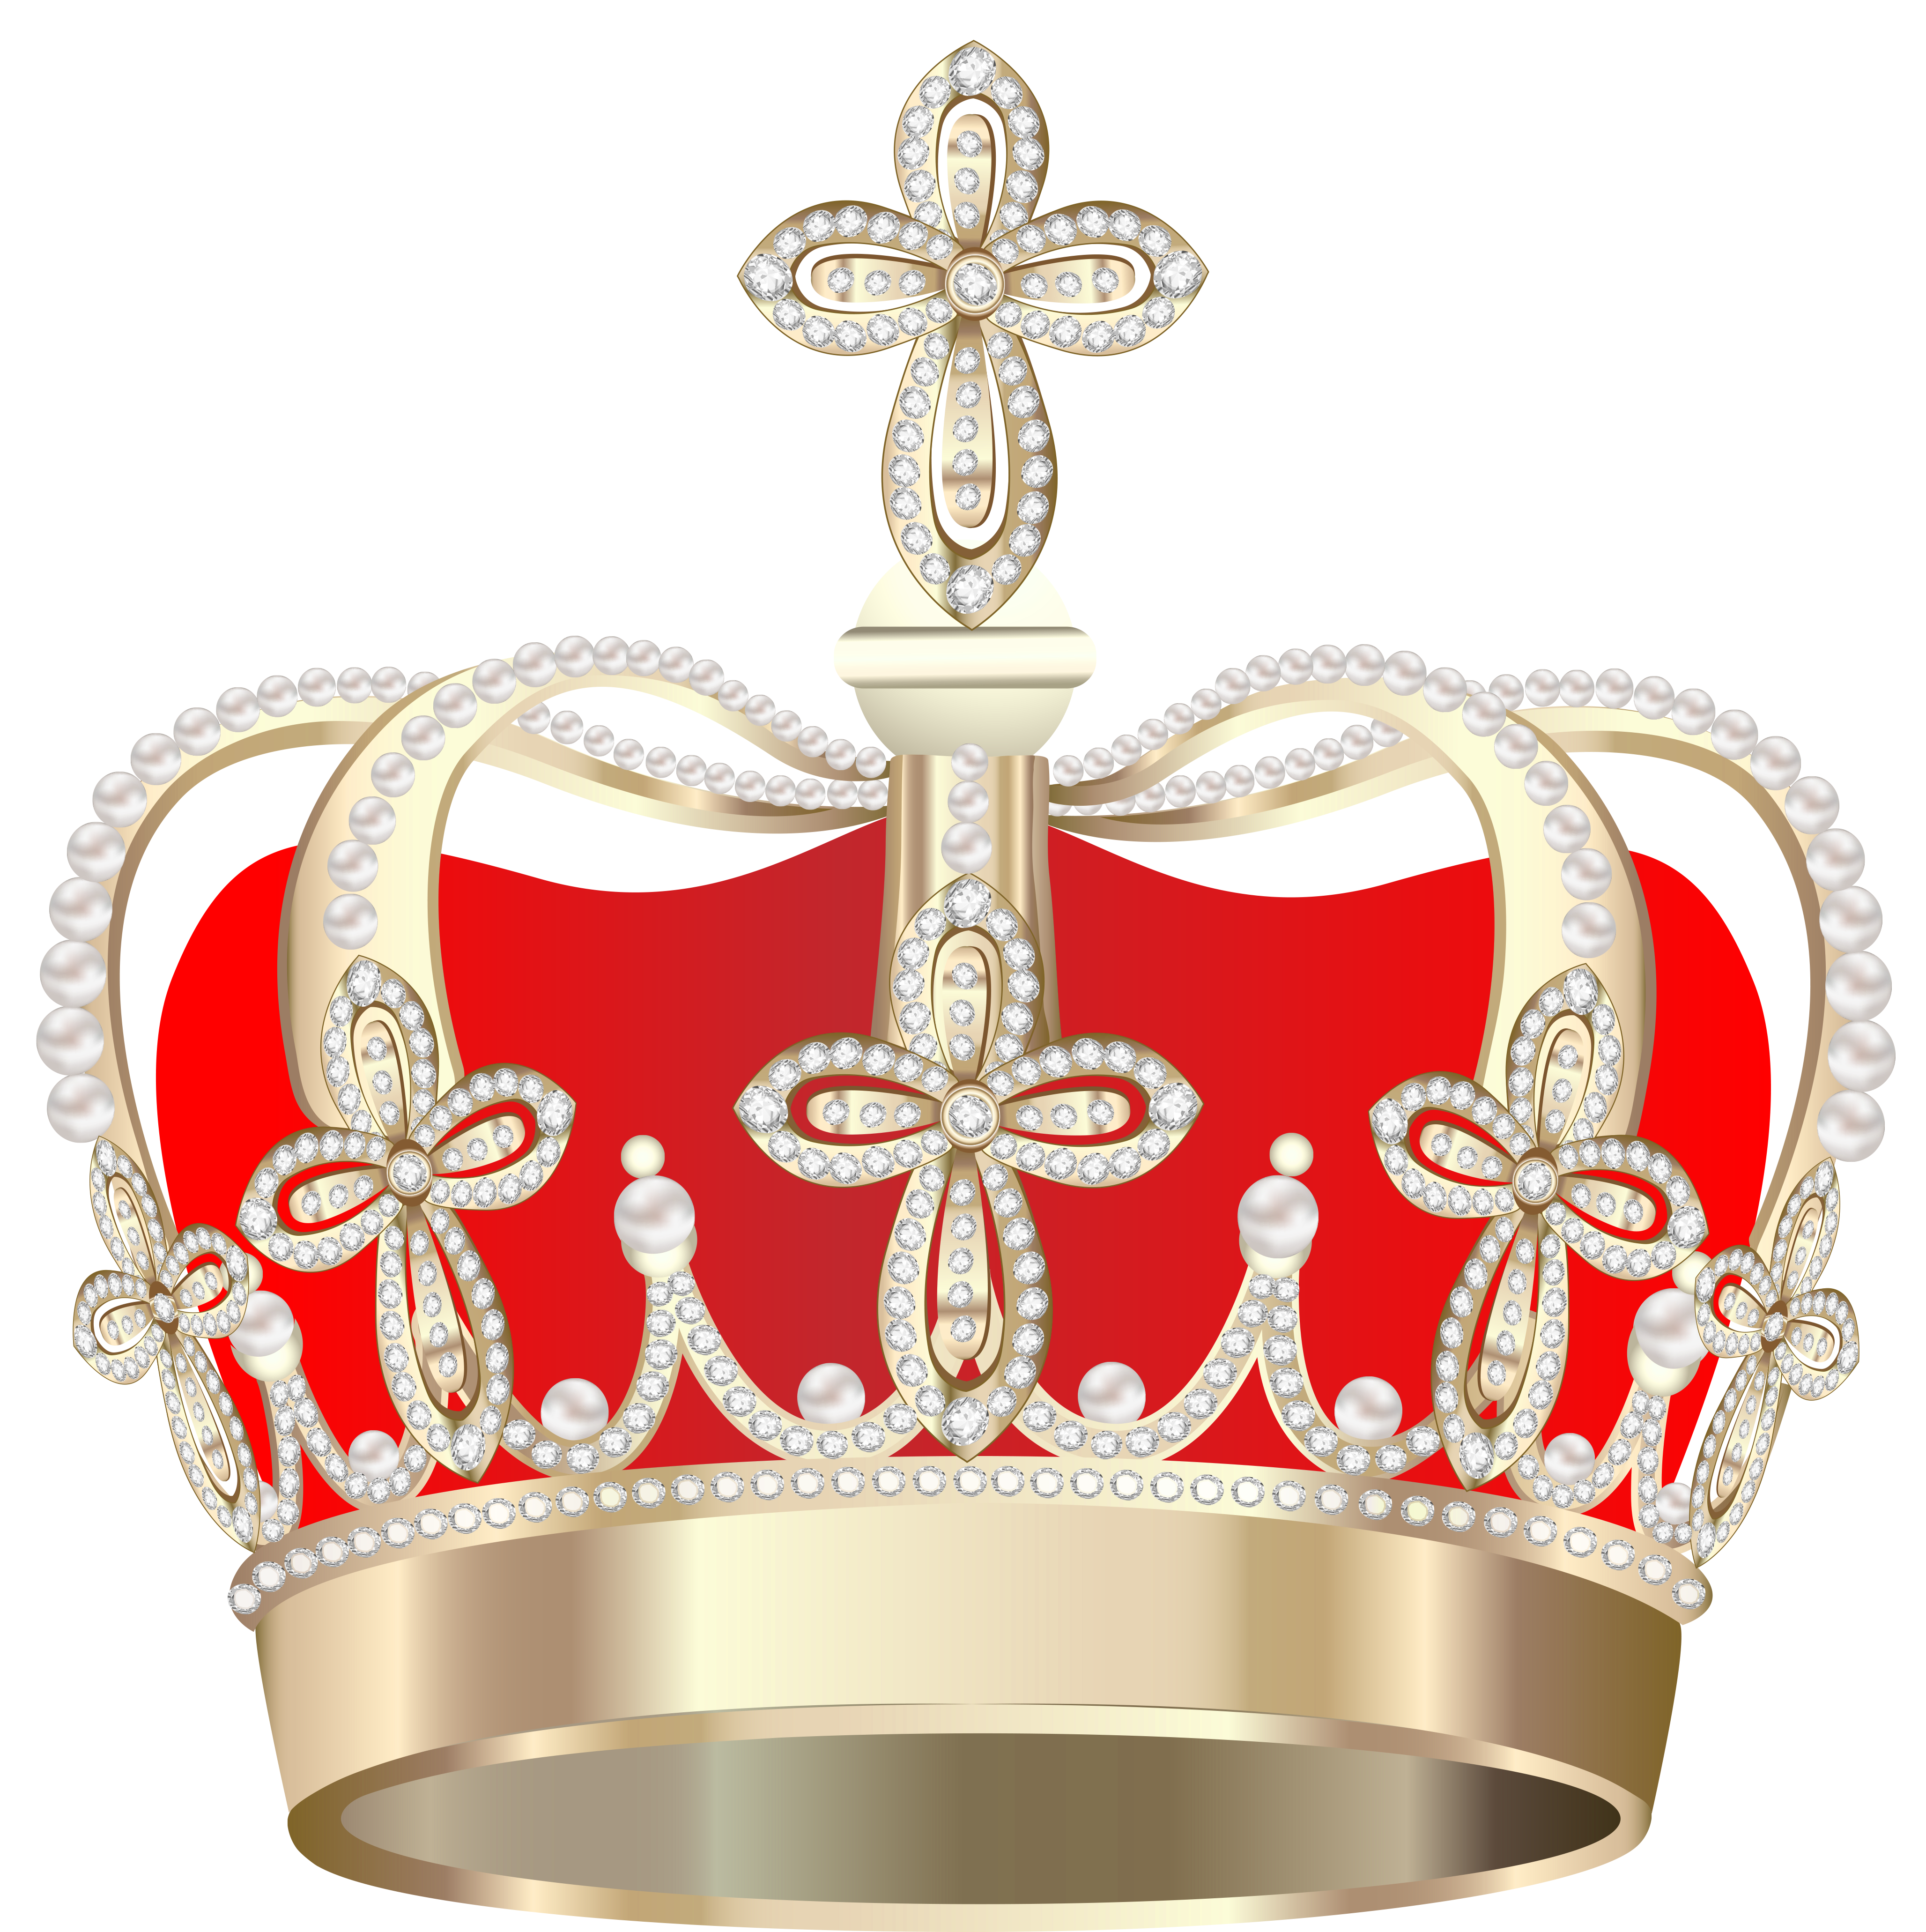 Red crown clipart transparent image black and white Transparent Crown PNG Picture | Gallery Yopriceville - High-Quality ... image black and white